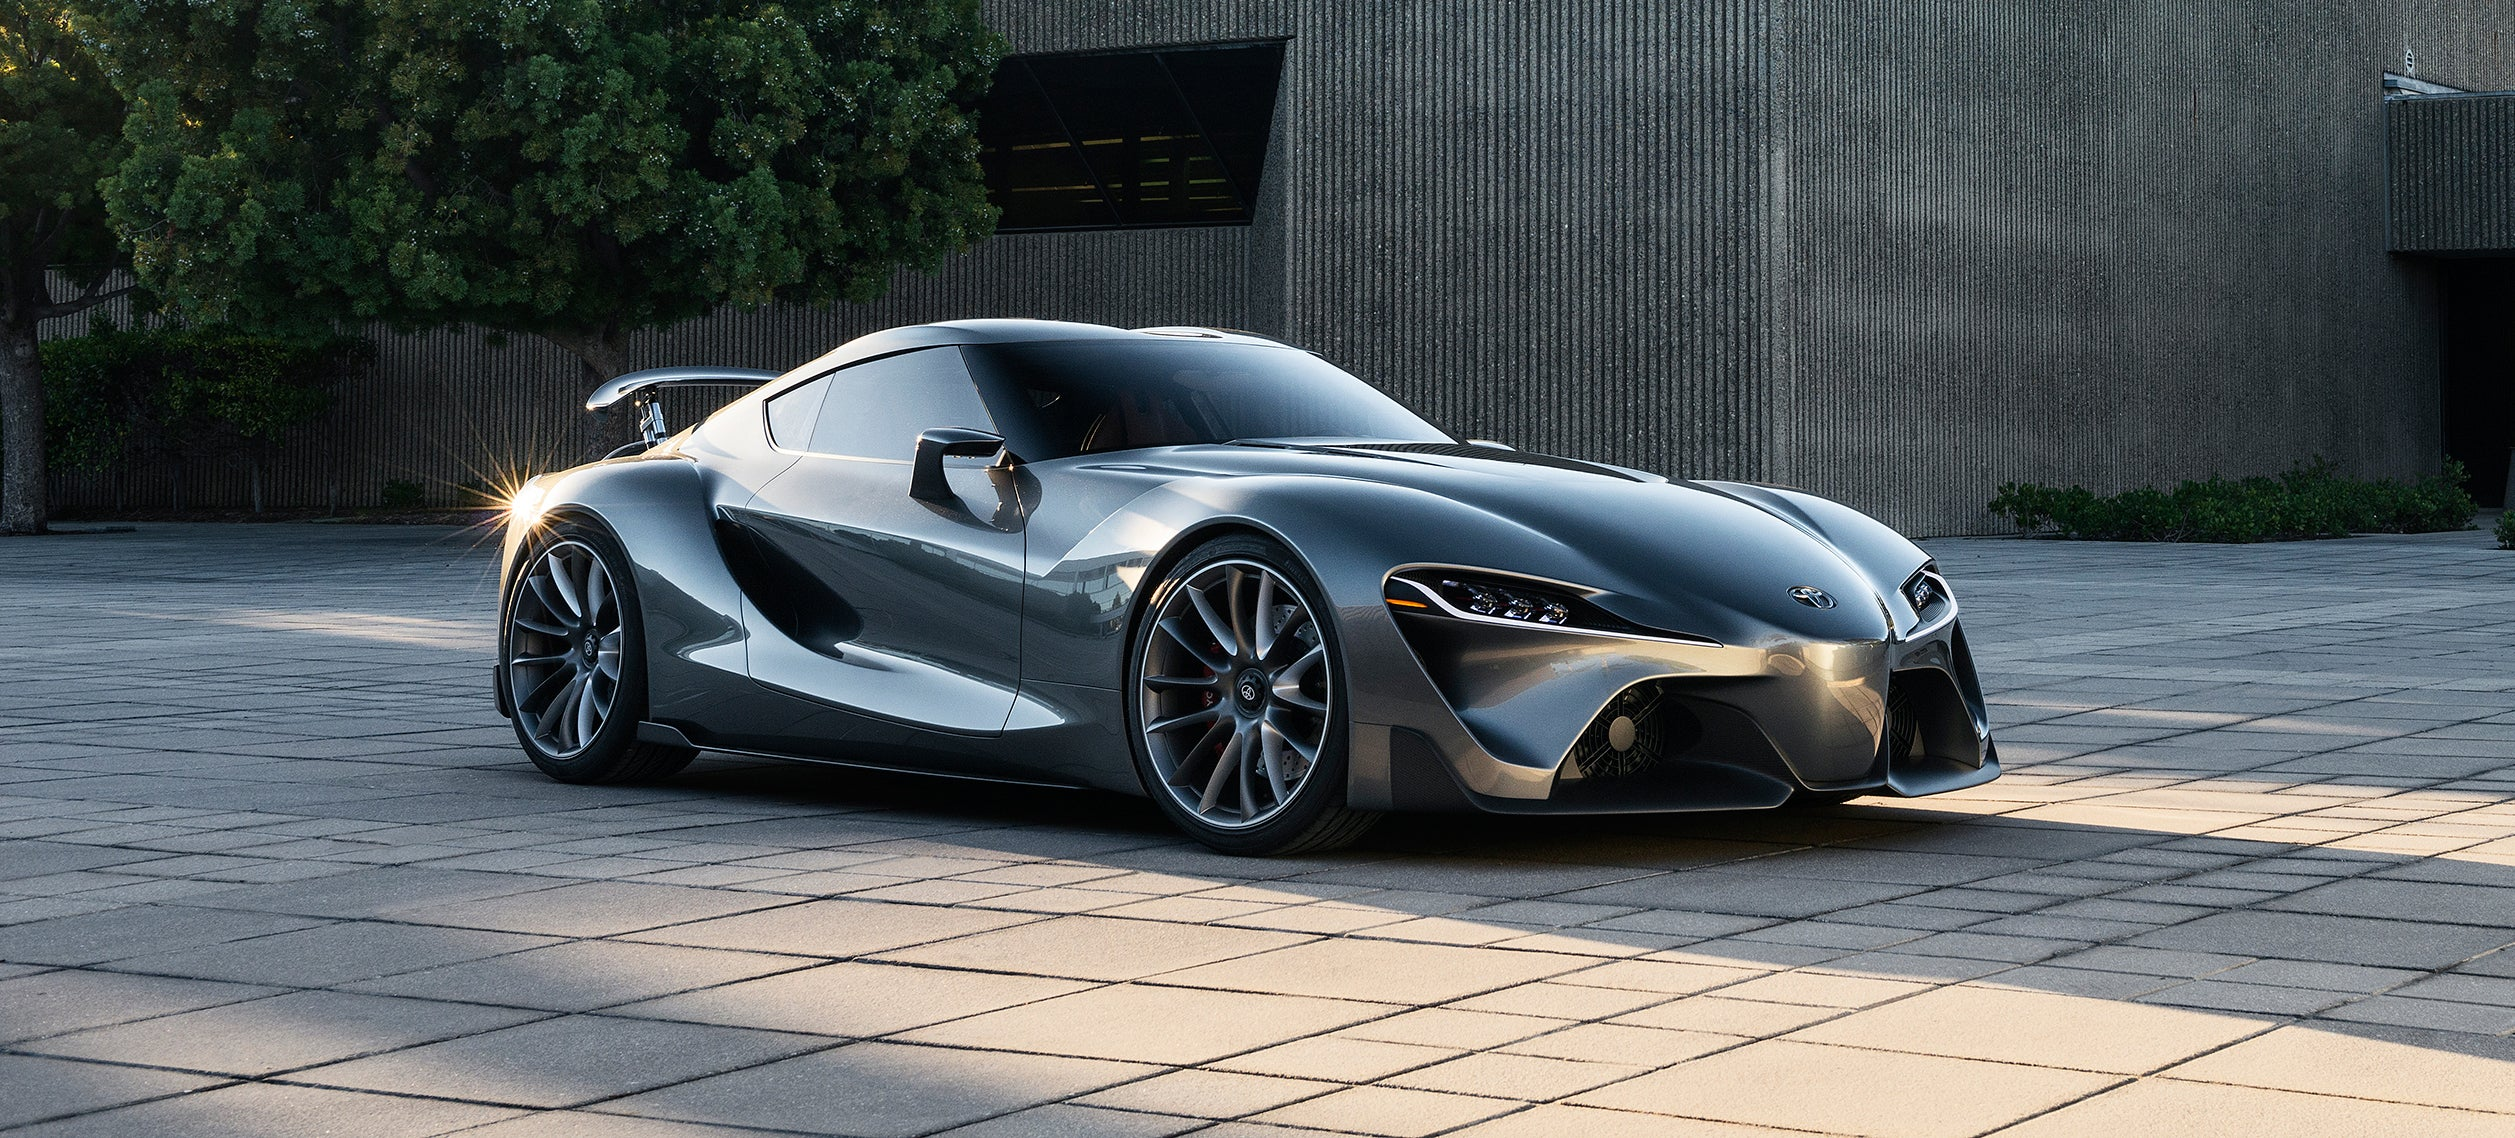 The Toyota Ft 1 S New Look Will Make You Want A New Supra